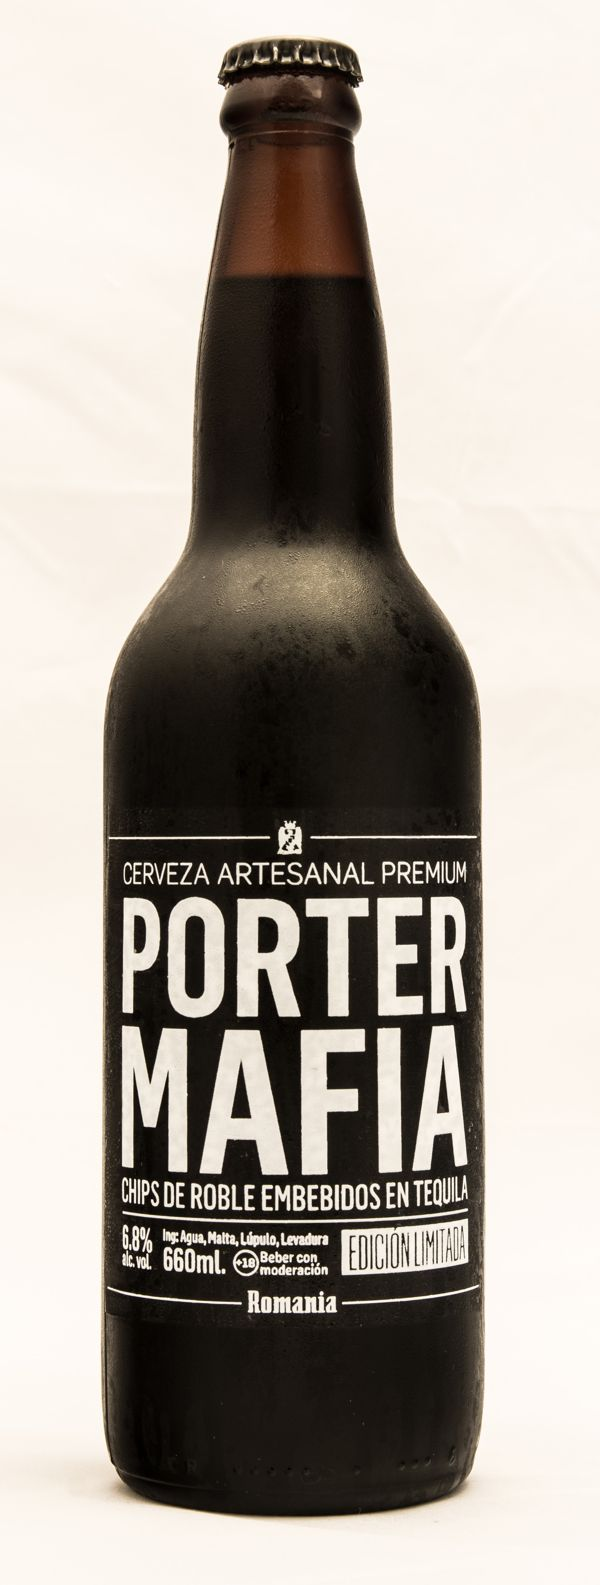 Romania Craft Beer Porter Mafia by